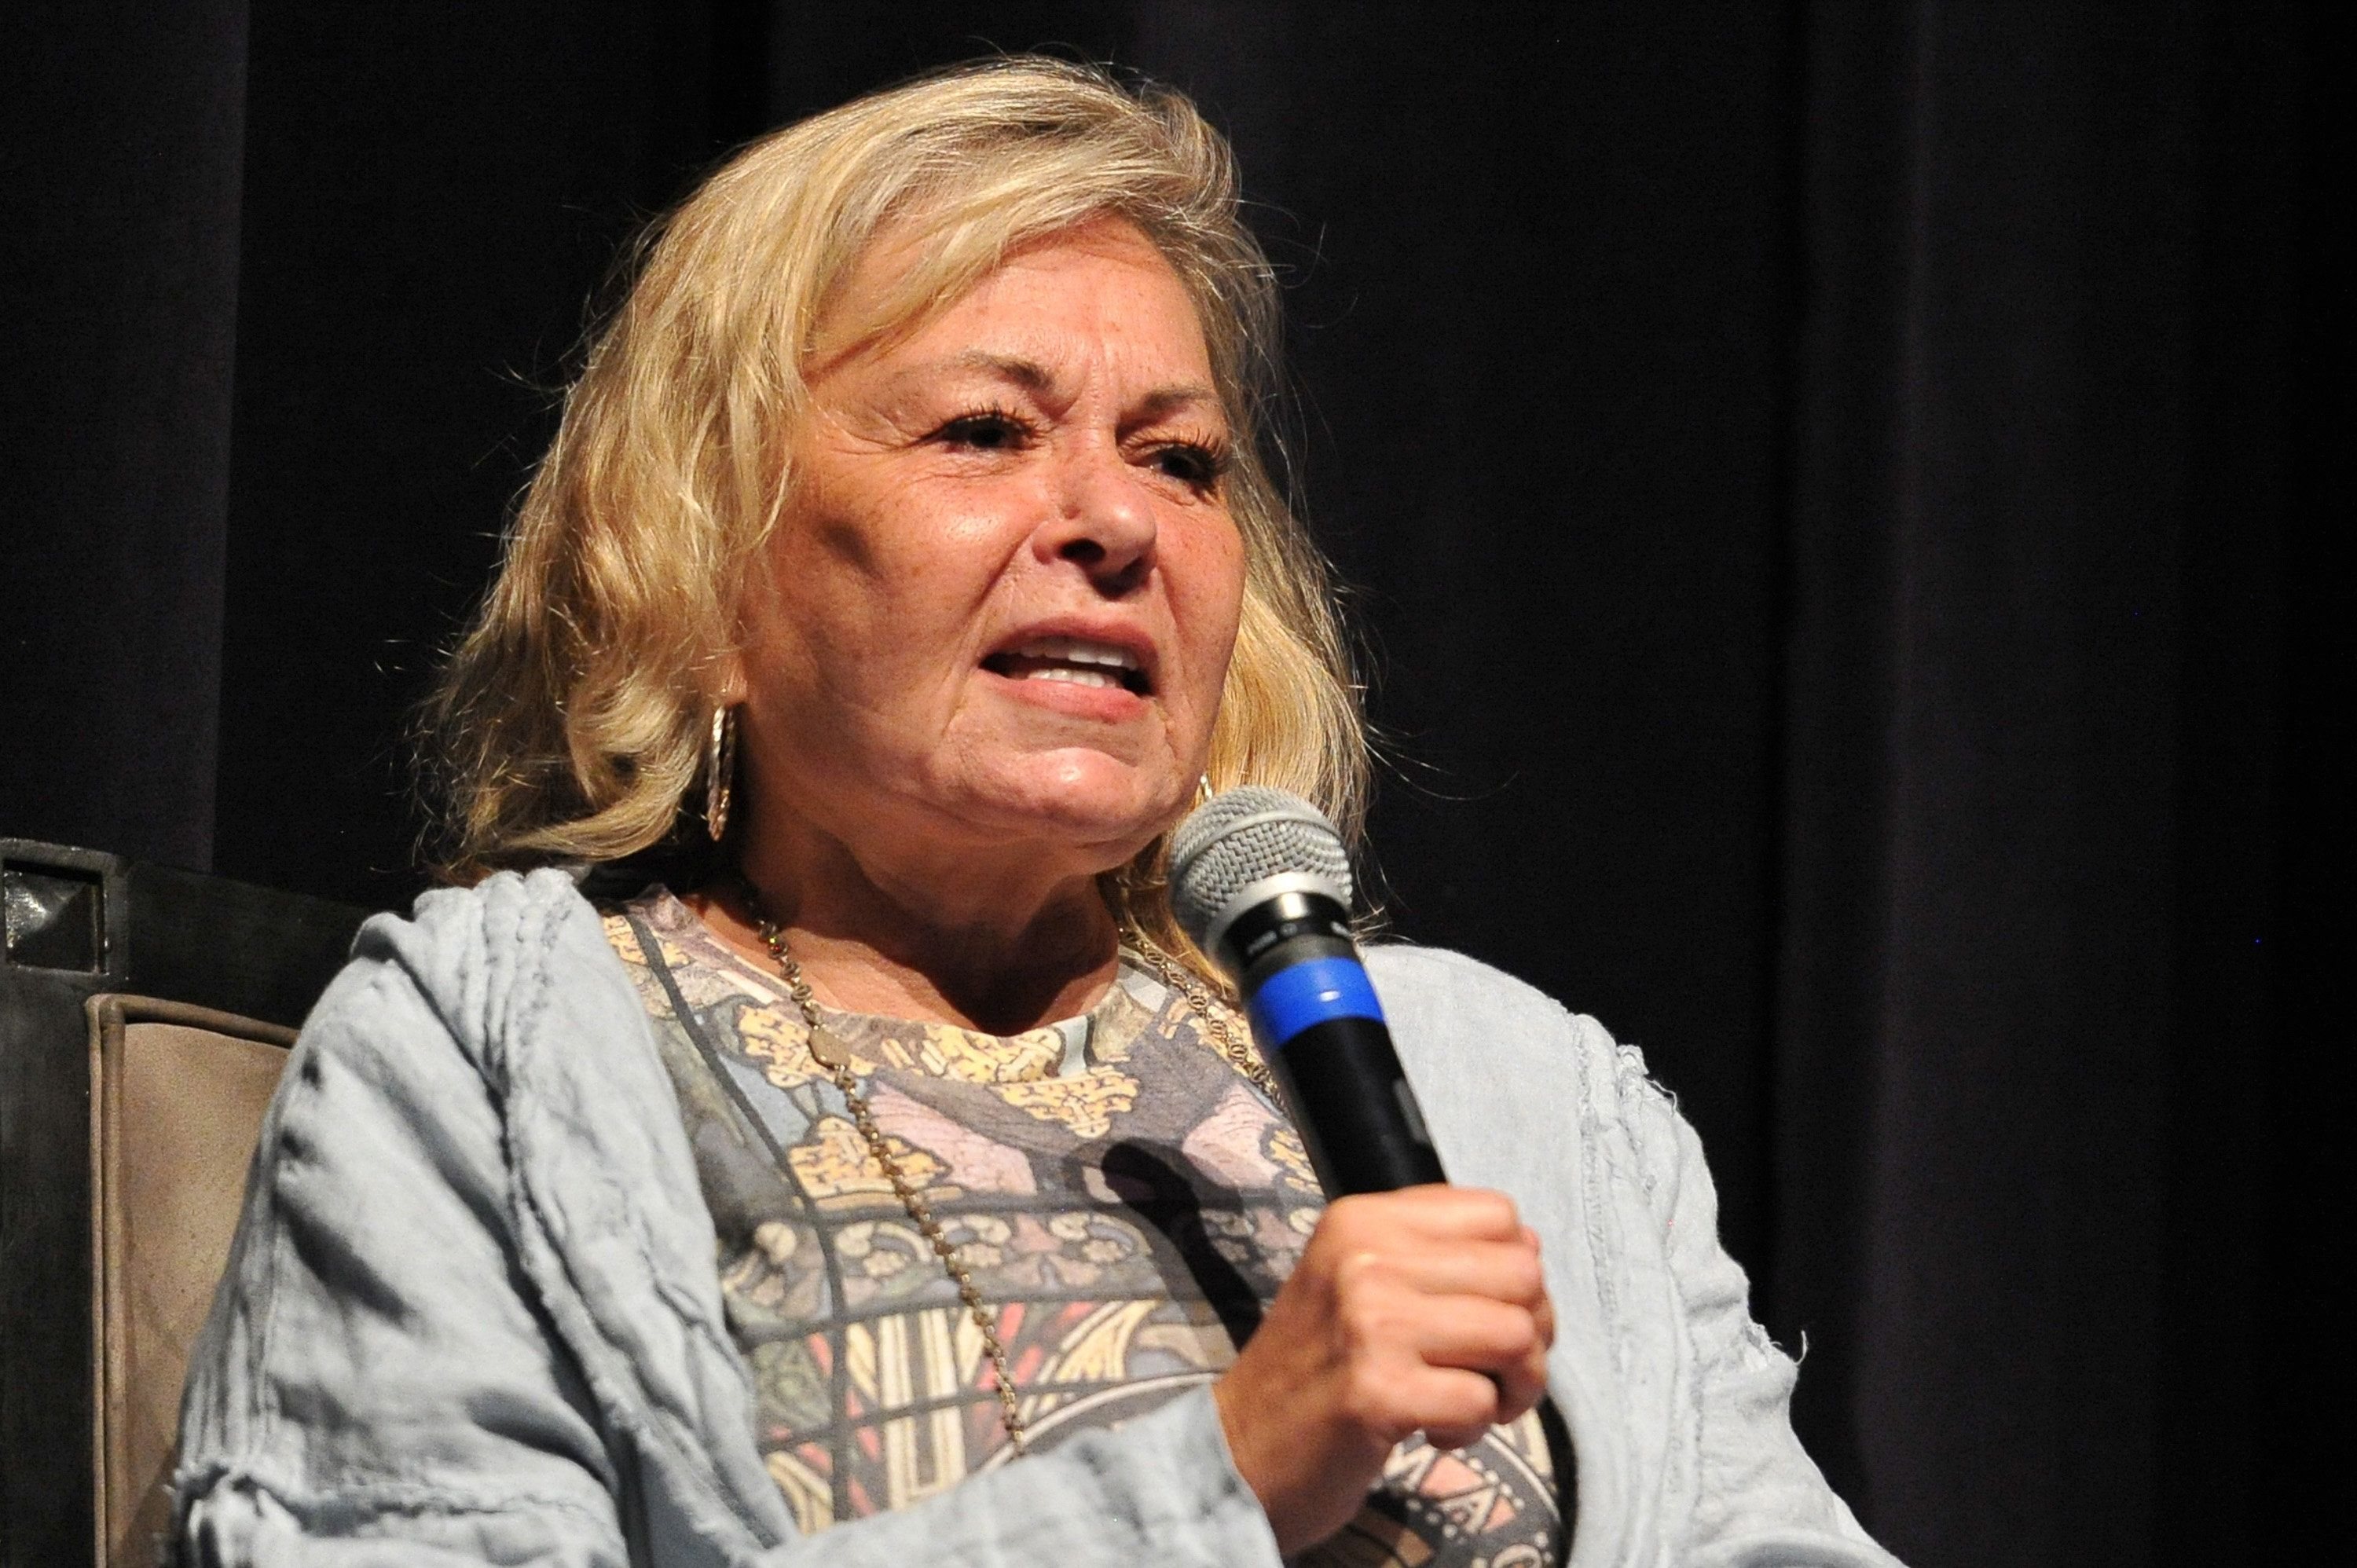 Roseanne Barr Claims 1 Tweet By Former Co-star Sara Gilbert Ruined Her